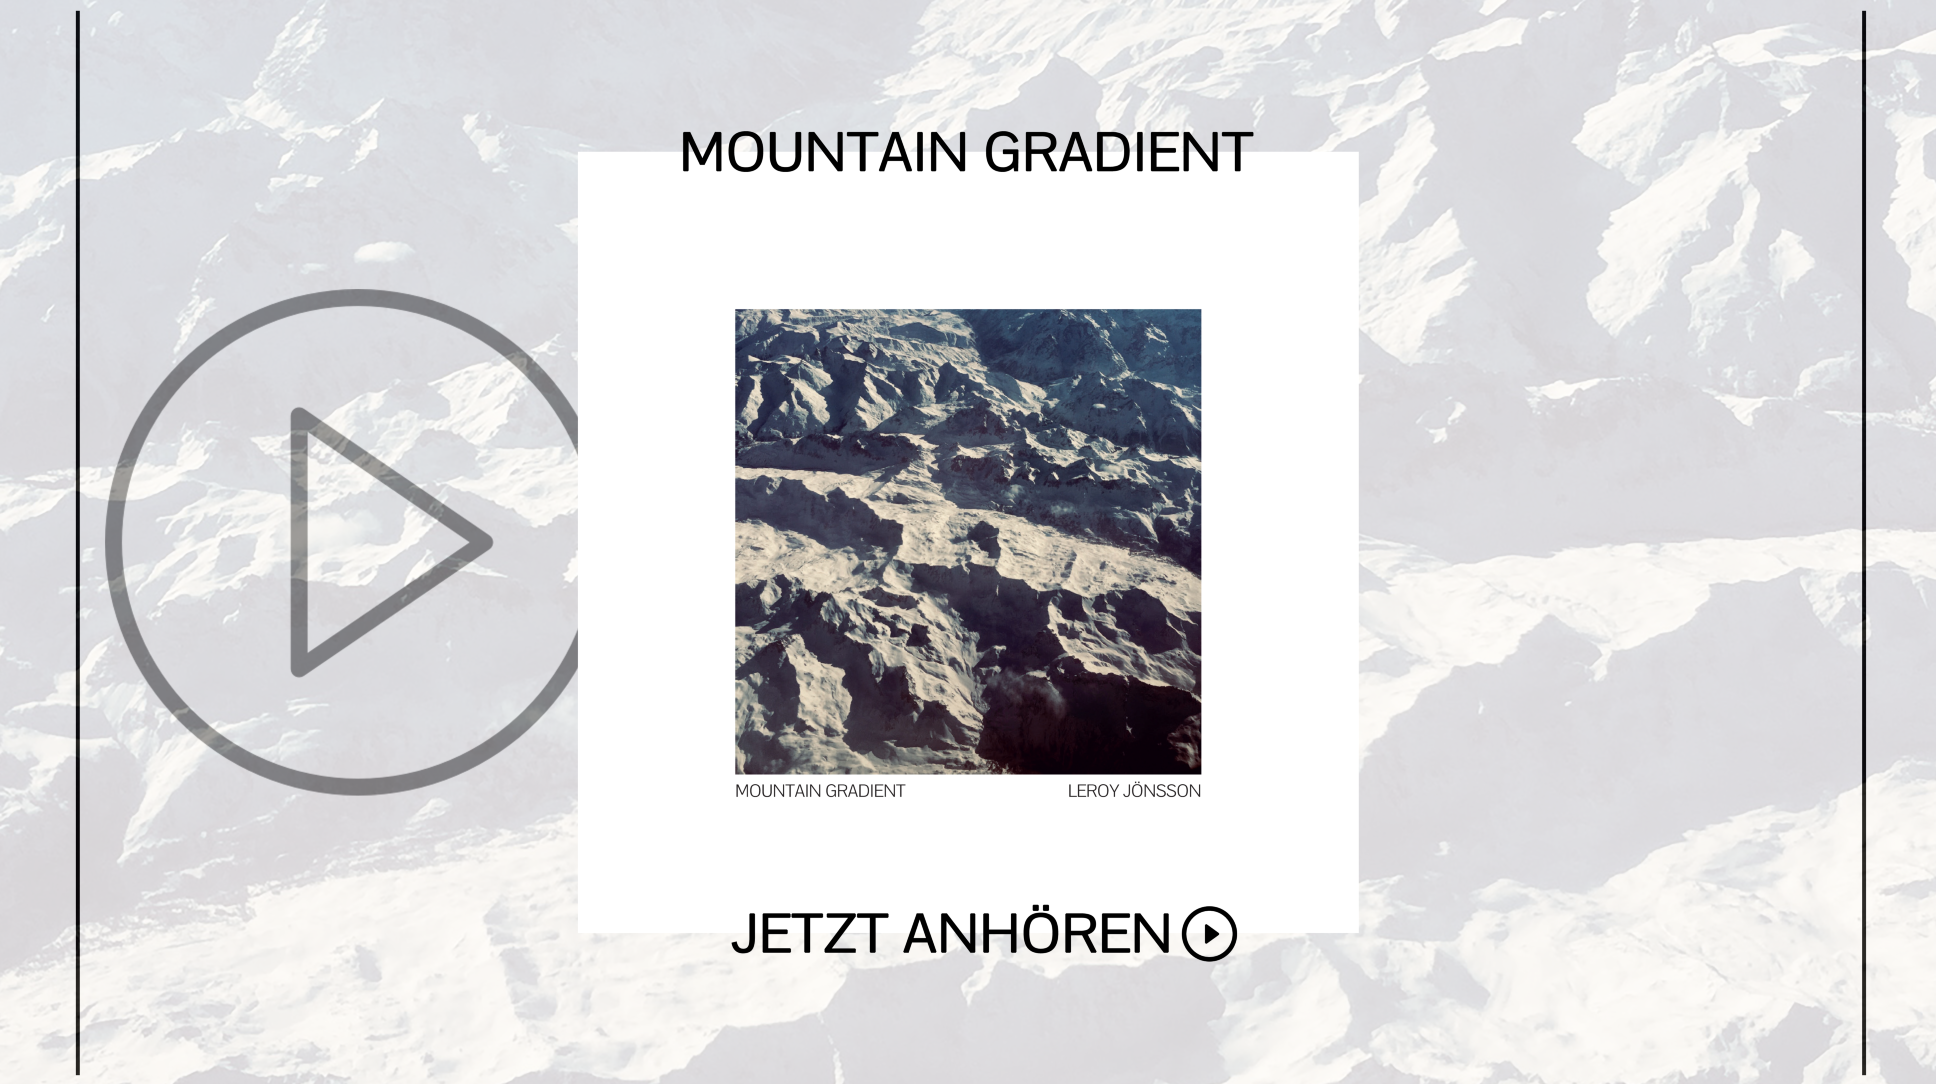 MOUNTAIN GRADIENT - Anhören